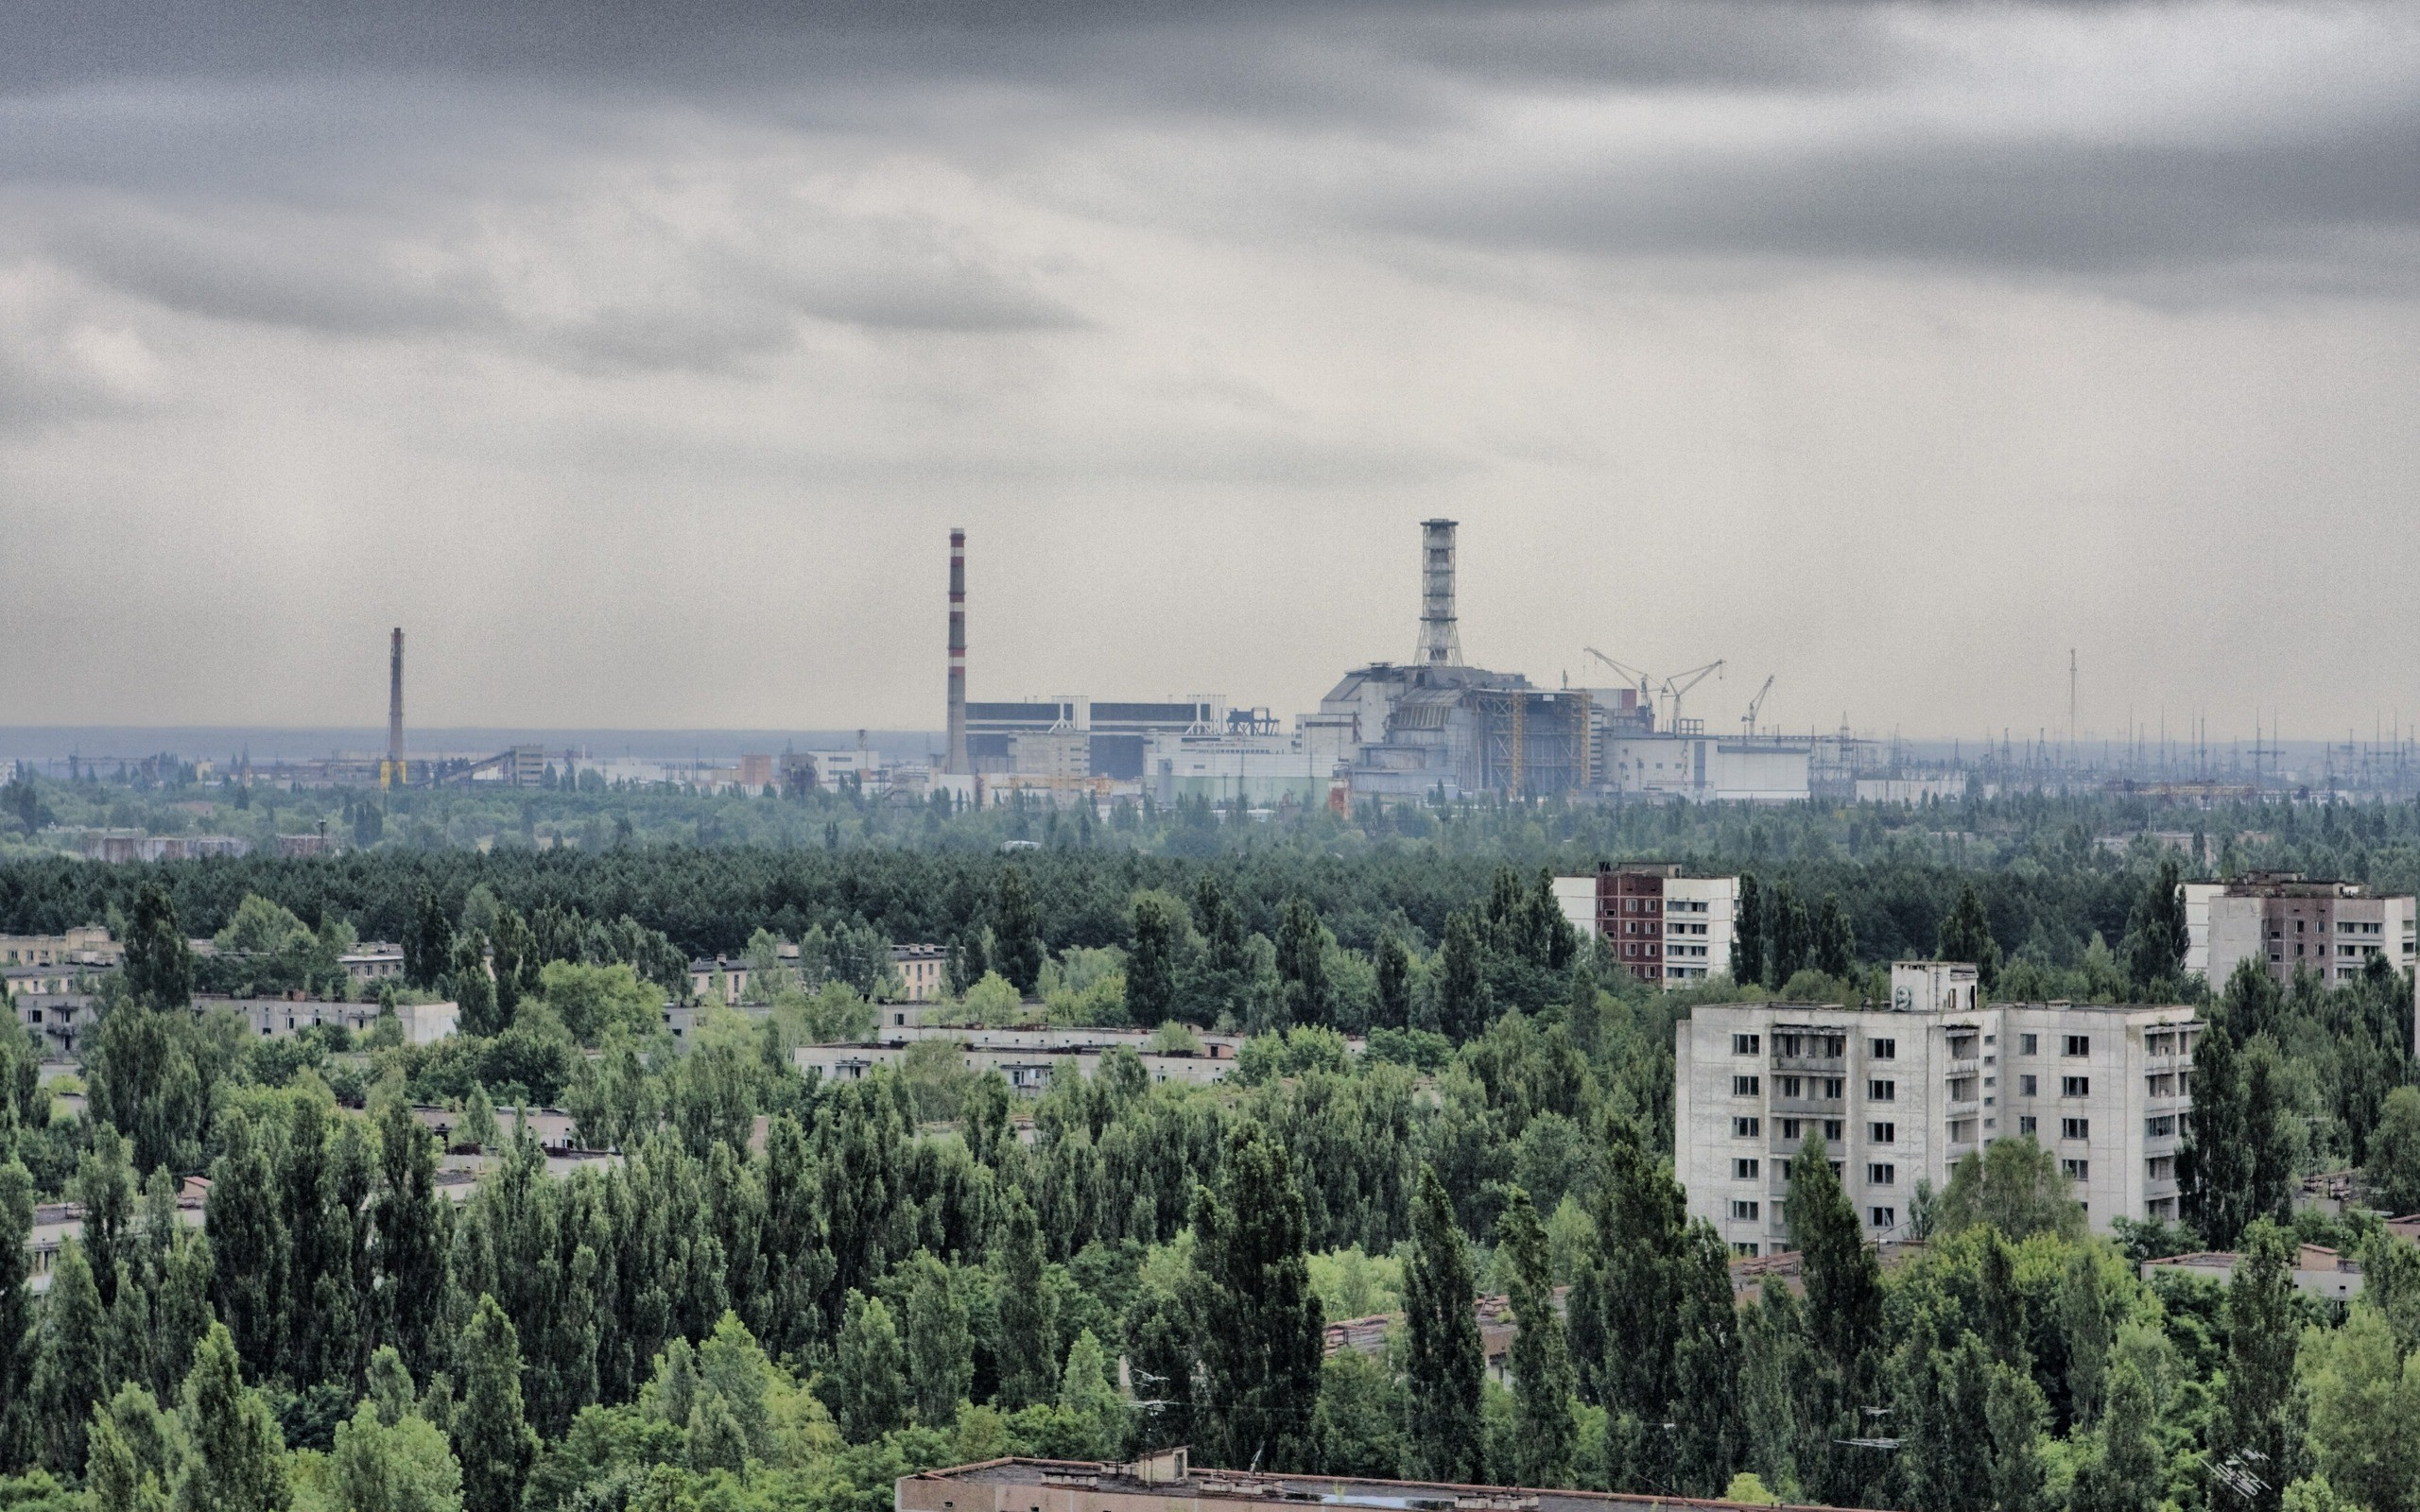 cityscapes Pripyat Chernobyl HD Wallpaper